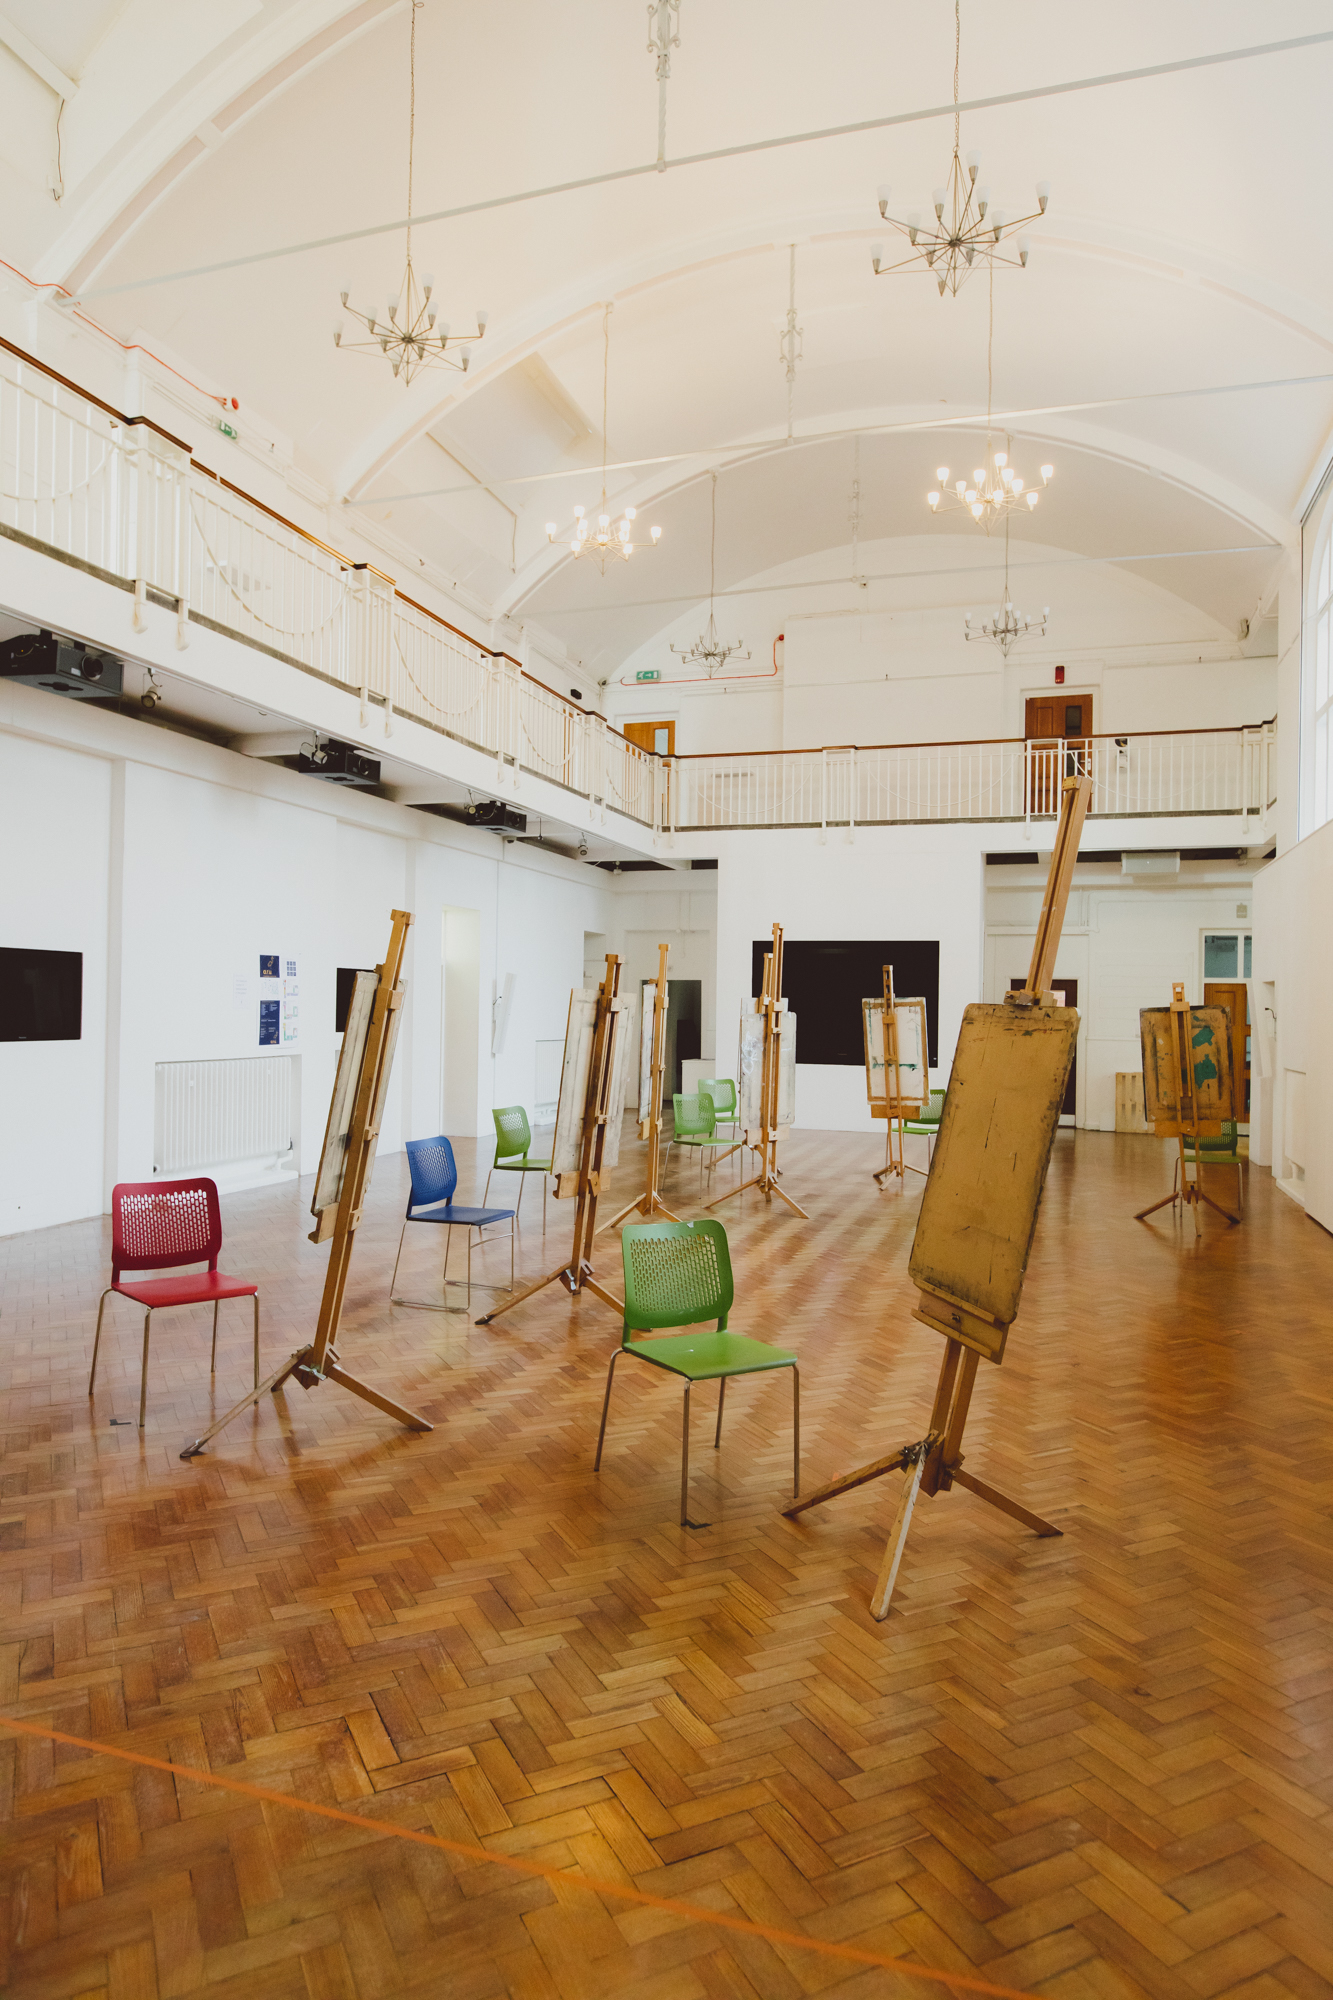 Easels and chairs in Ruskin Gallery